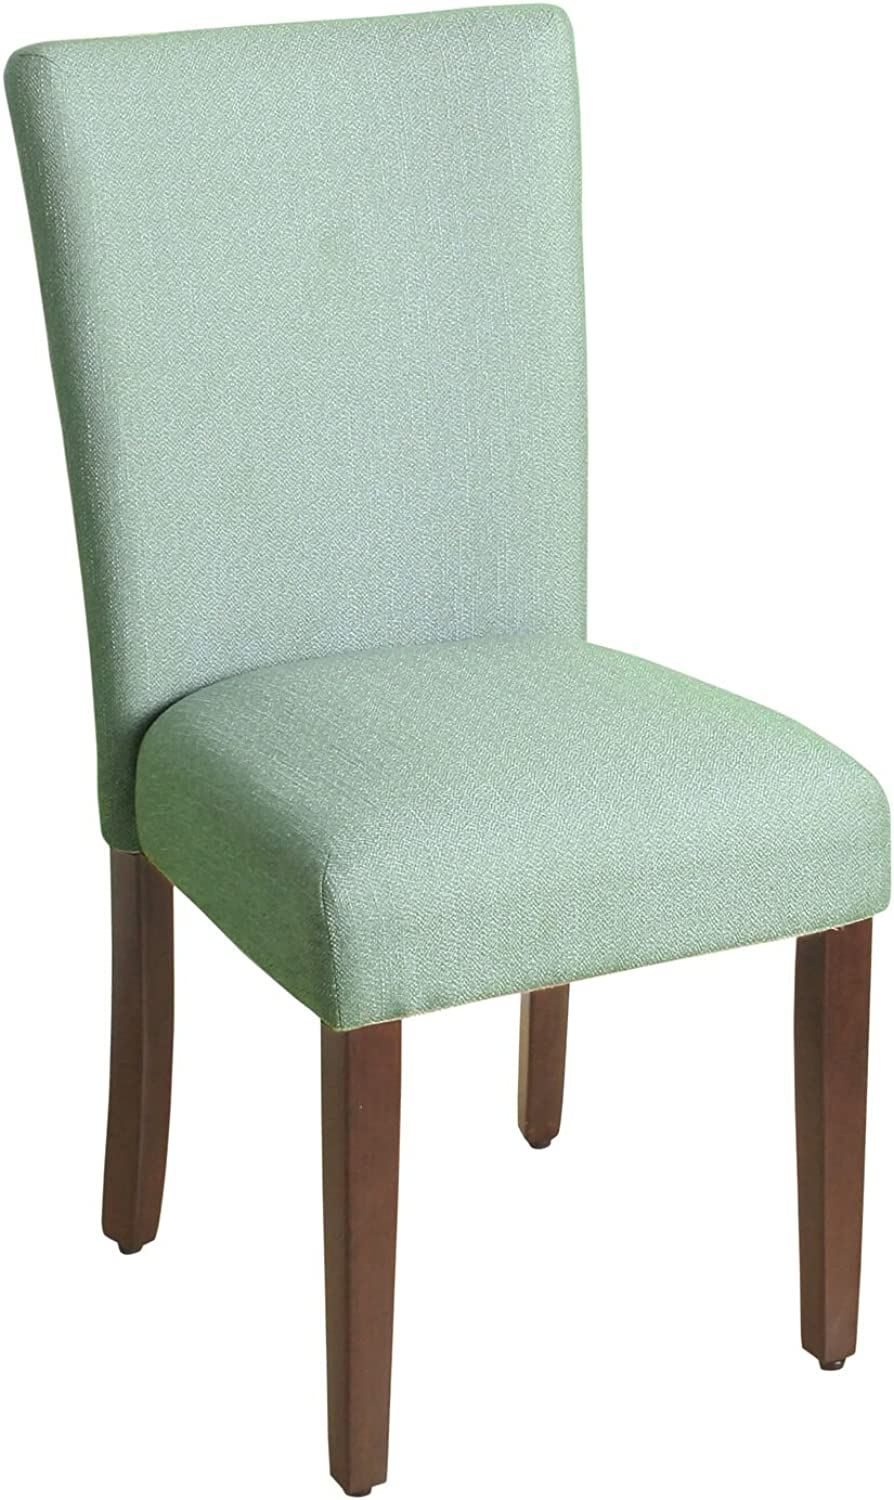 Kinfine Parsons Classic Dining Chair, Teal (Single Pack)